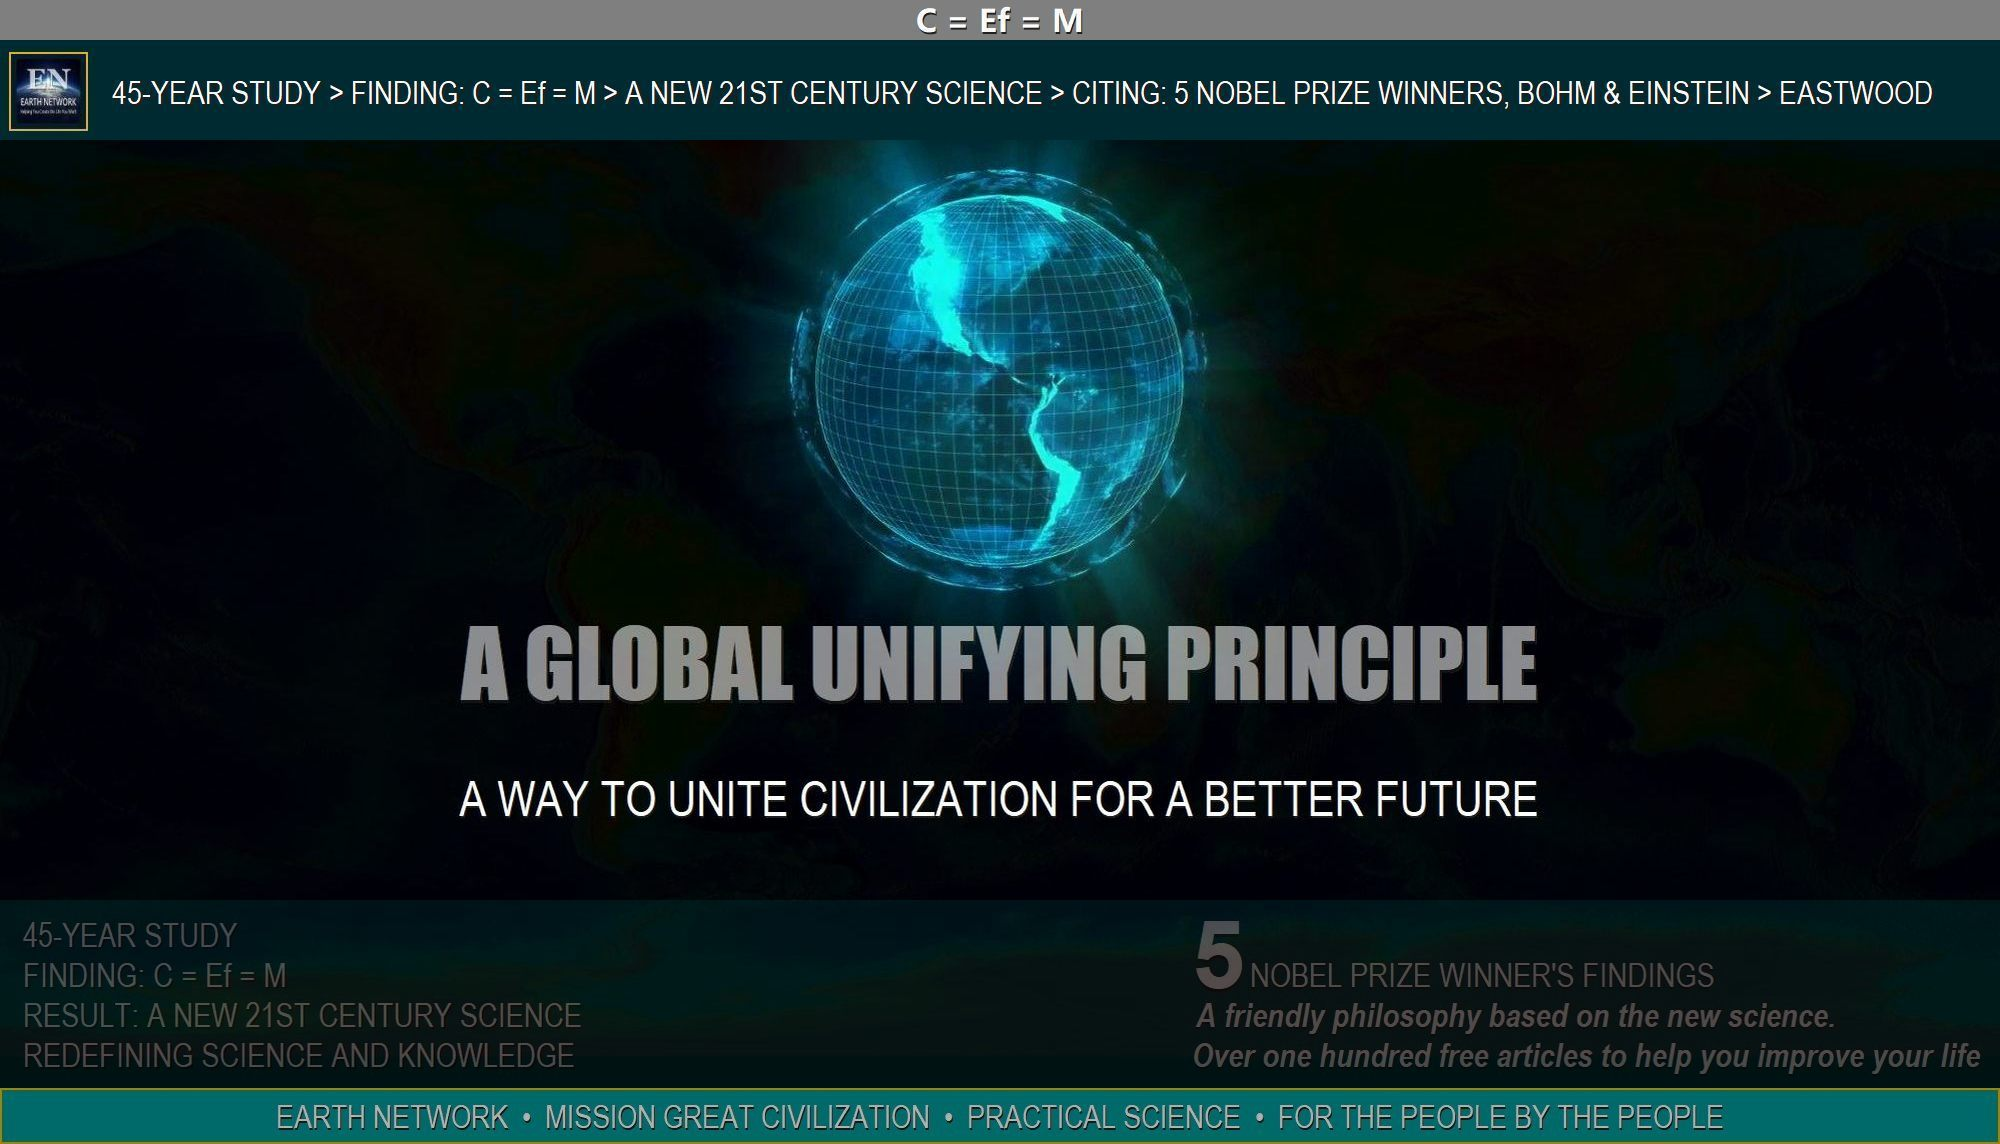 Hologram of earth depicts a unifying principle to unite the world for a better future.